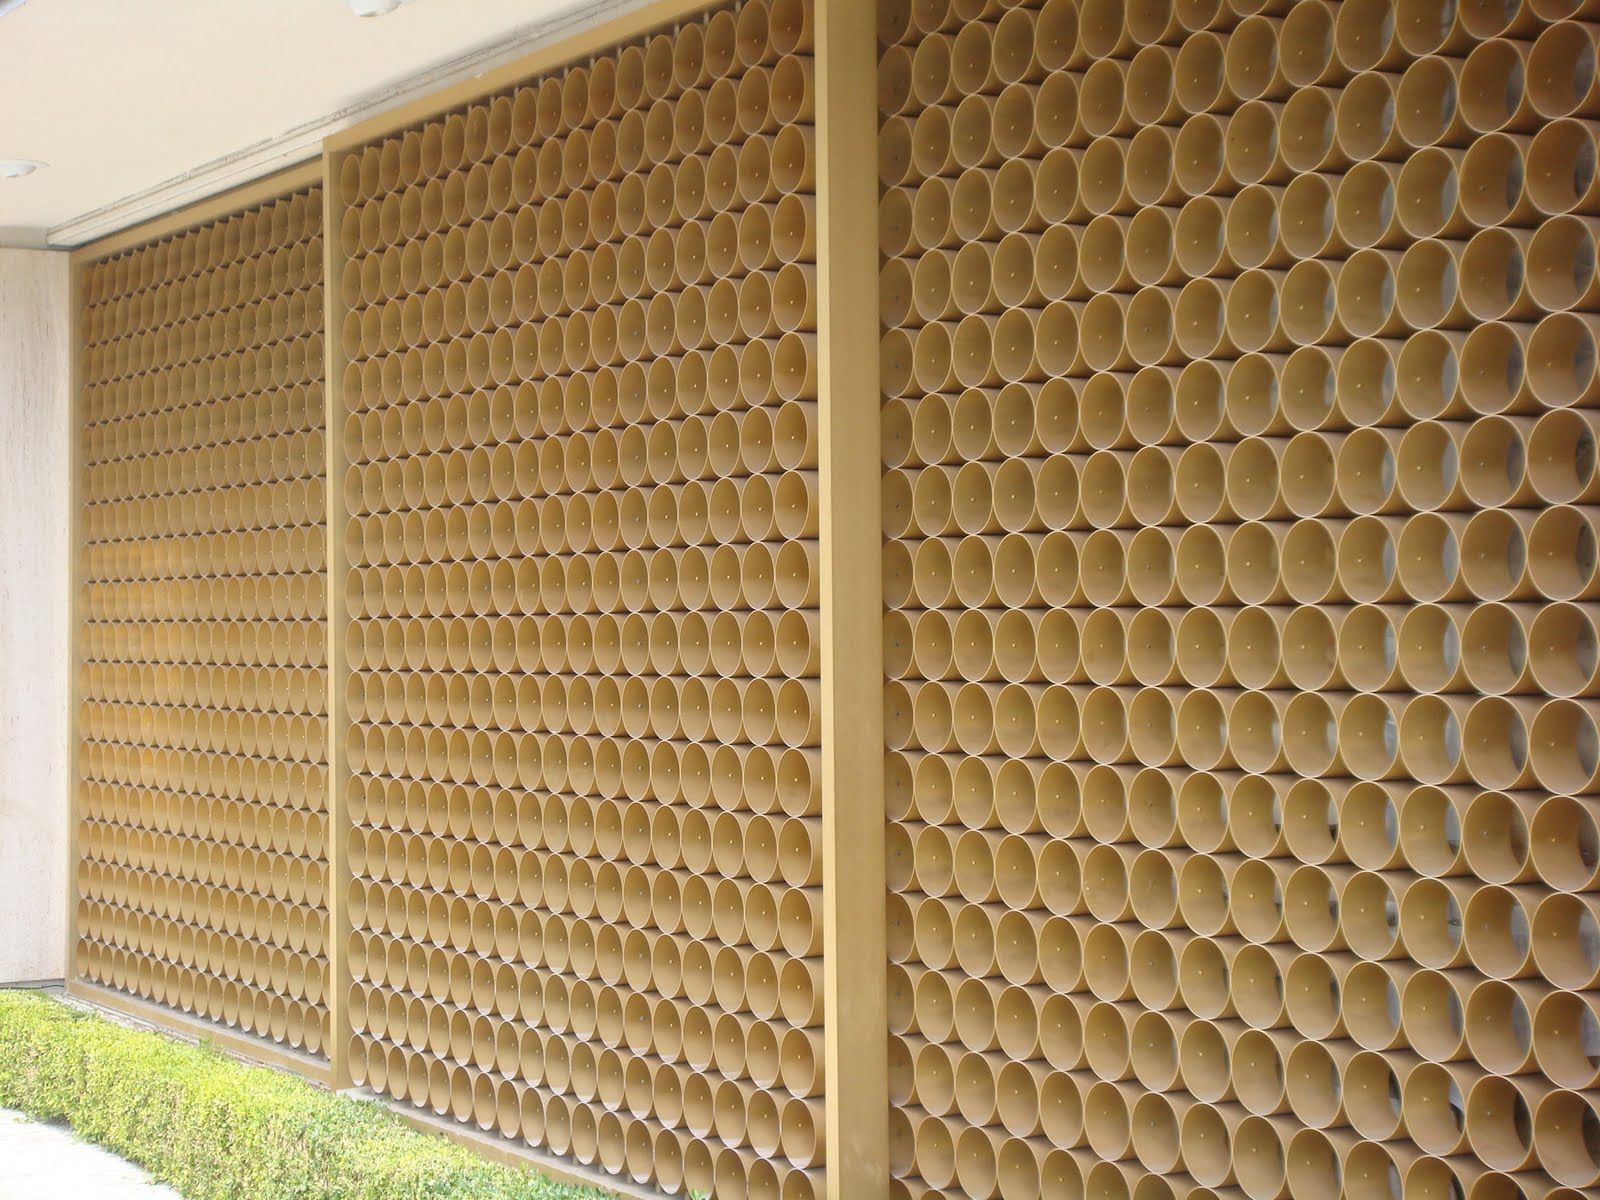 mid century modern wall screens and decorative screen blocks